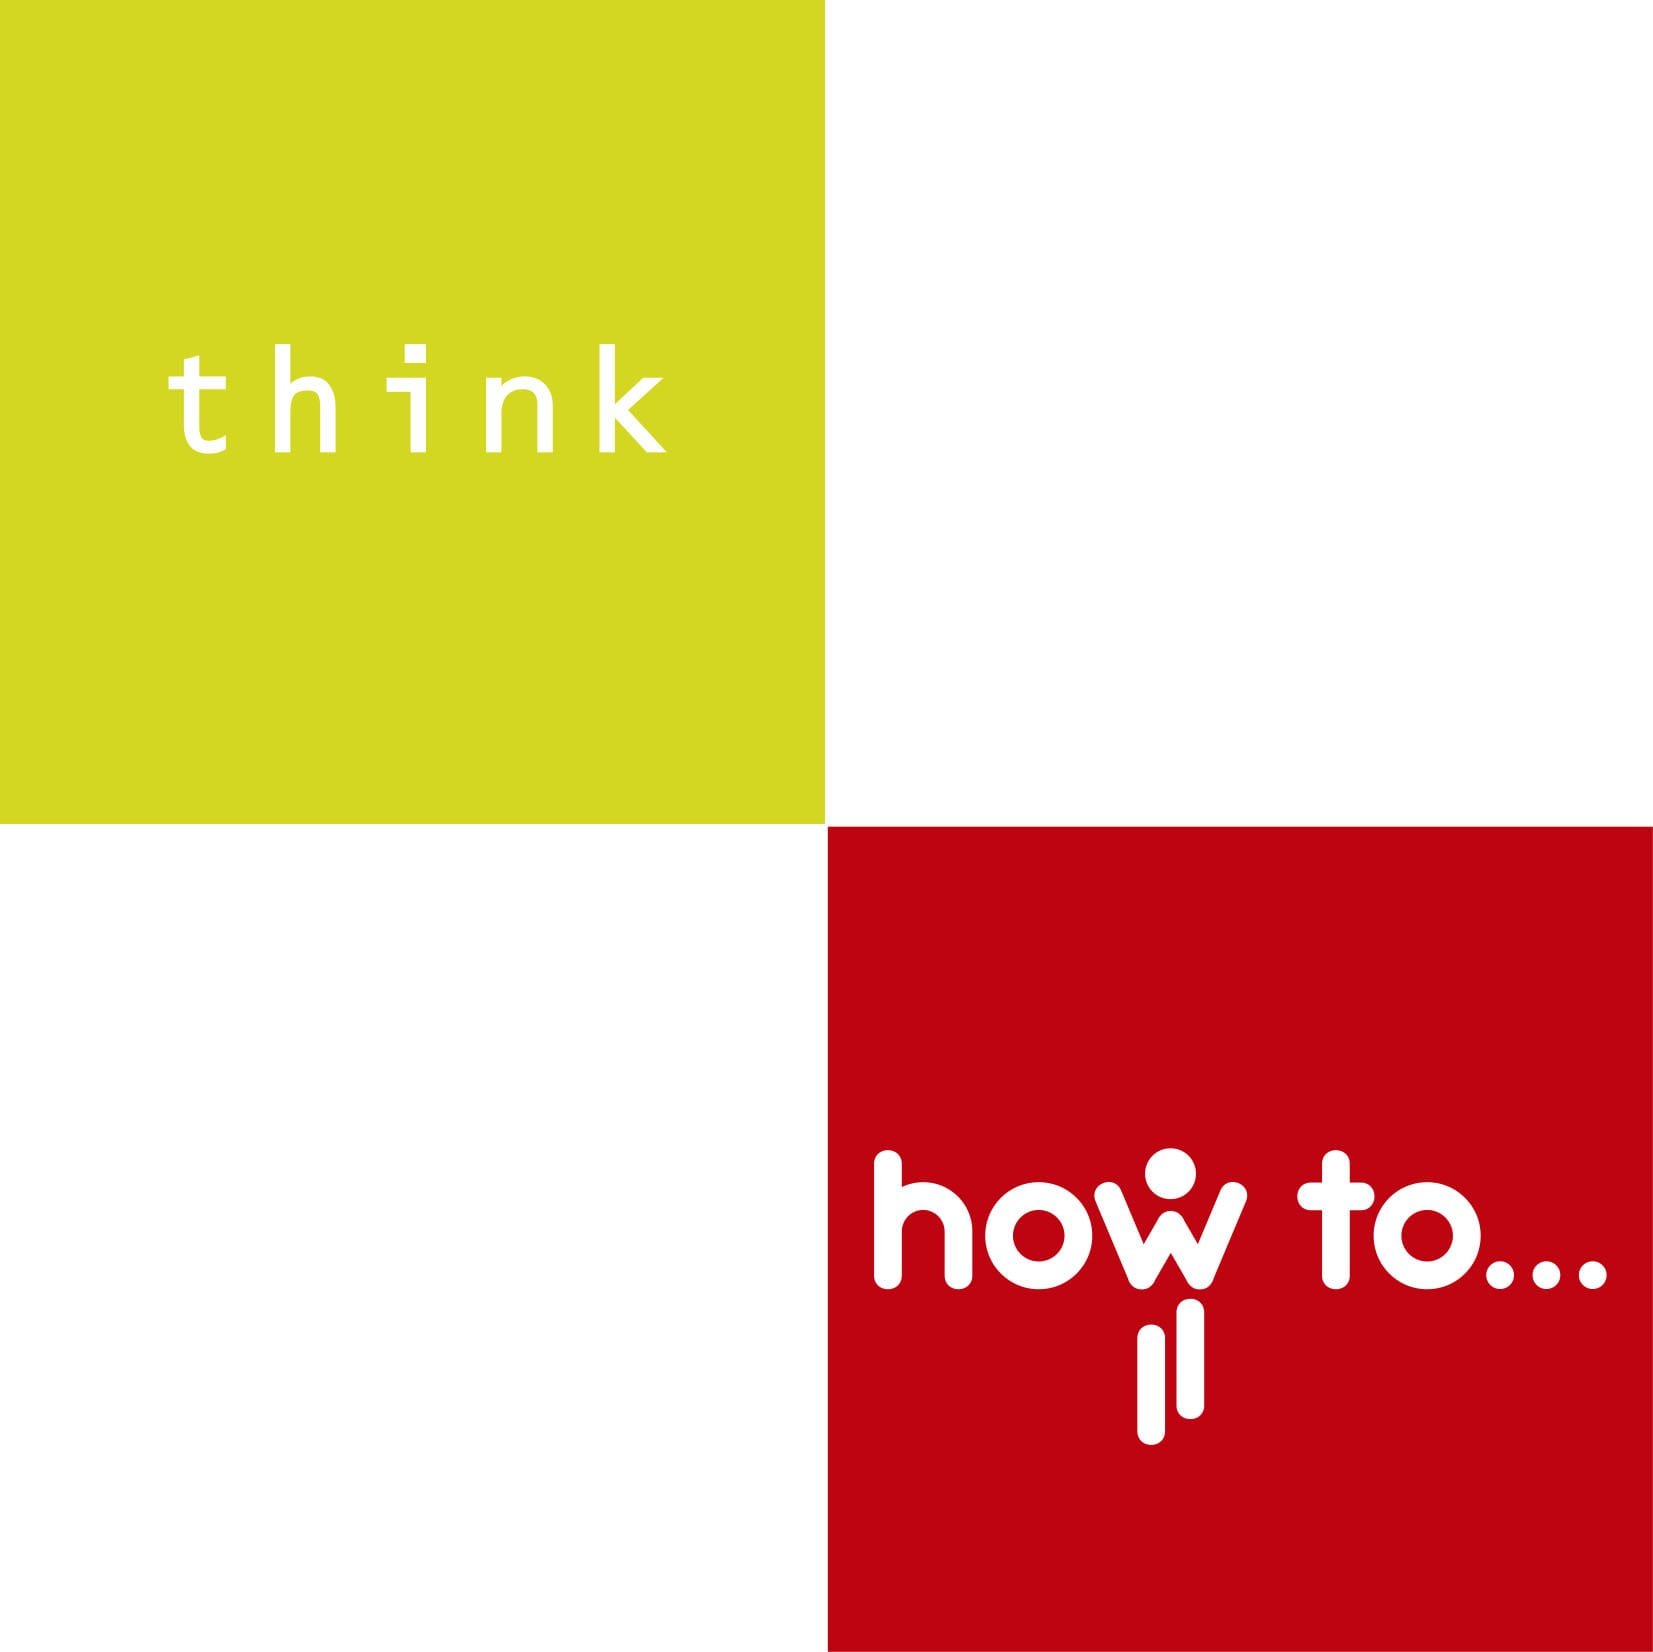 logo how to think